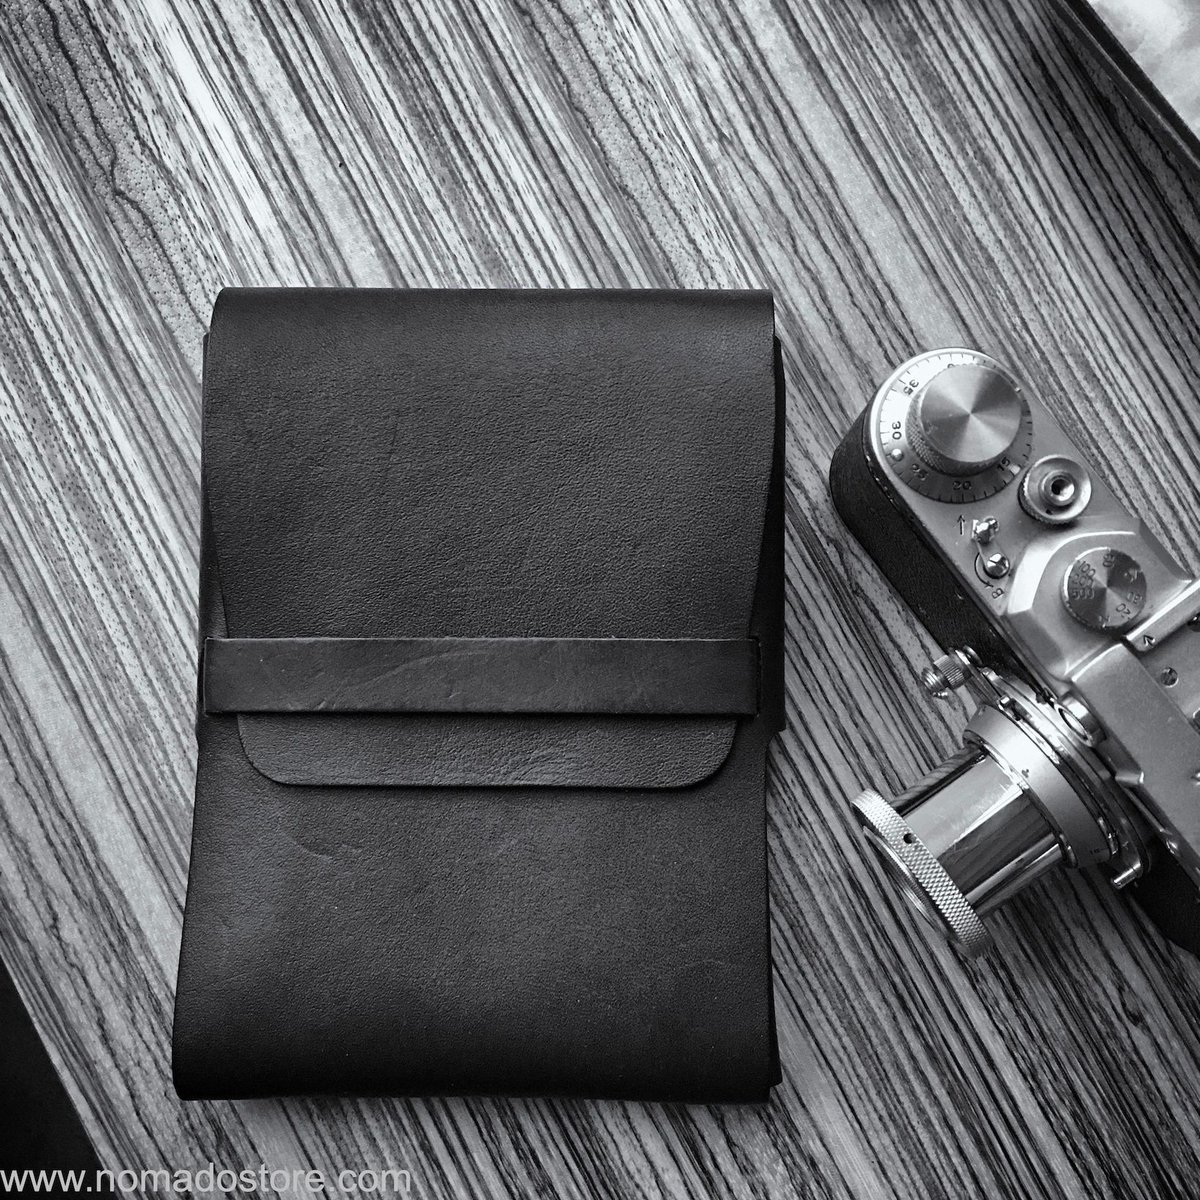 Took a minute this PM to admire the clean lines & textures of my #urukustxnomadostore Small Organizer.    #madeinjapan #fountainpenaddict #wallet #leathercraft #craftsmanship #handmade #wanderlust #edc #madeinyokohama  #conceptstore #nomadostore @urukust #urukust #collabpic.twitter.com/0F1sBxBNz4